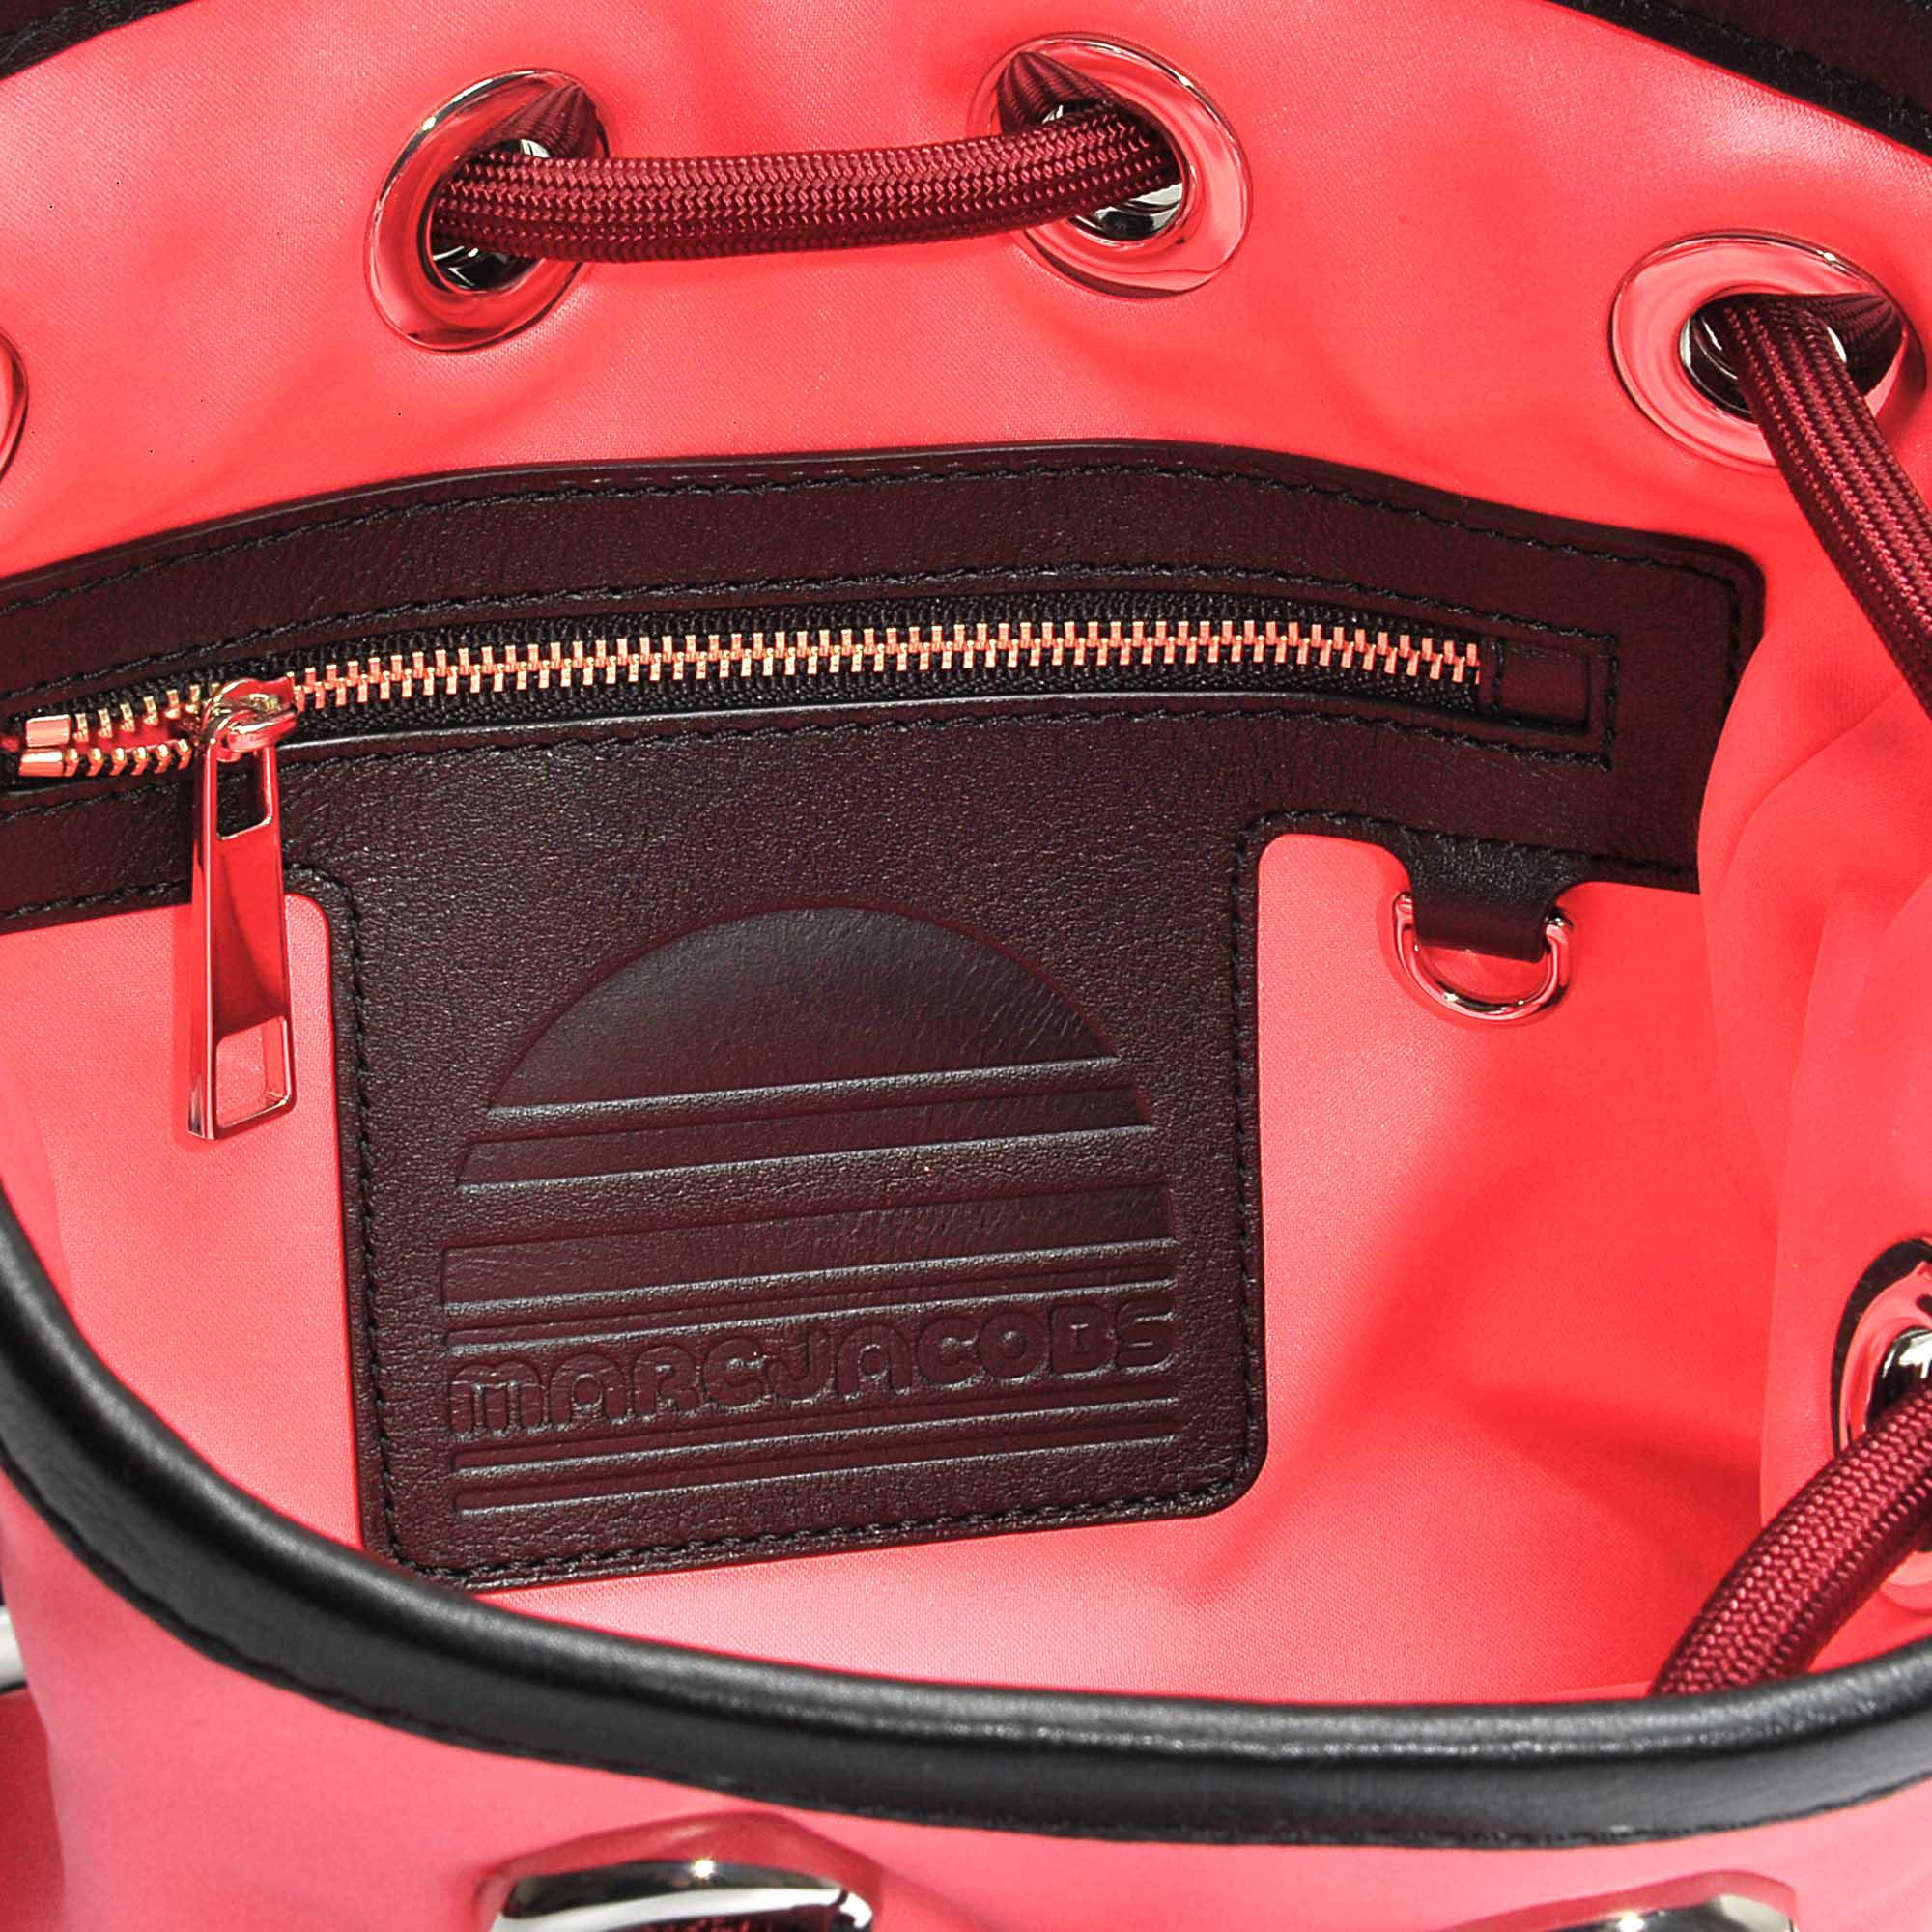 Small Sport Sling Bag in Coral Polyester Marc Jacobs xCpZ8LW